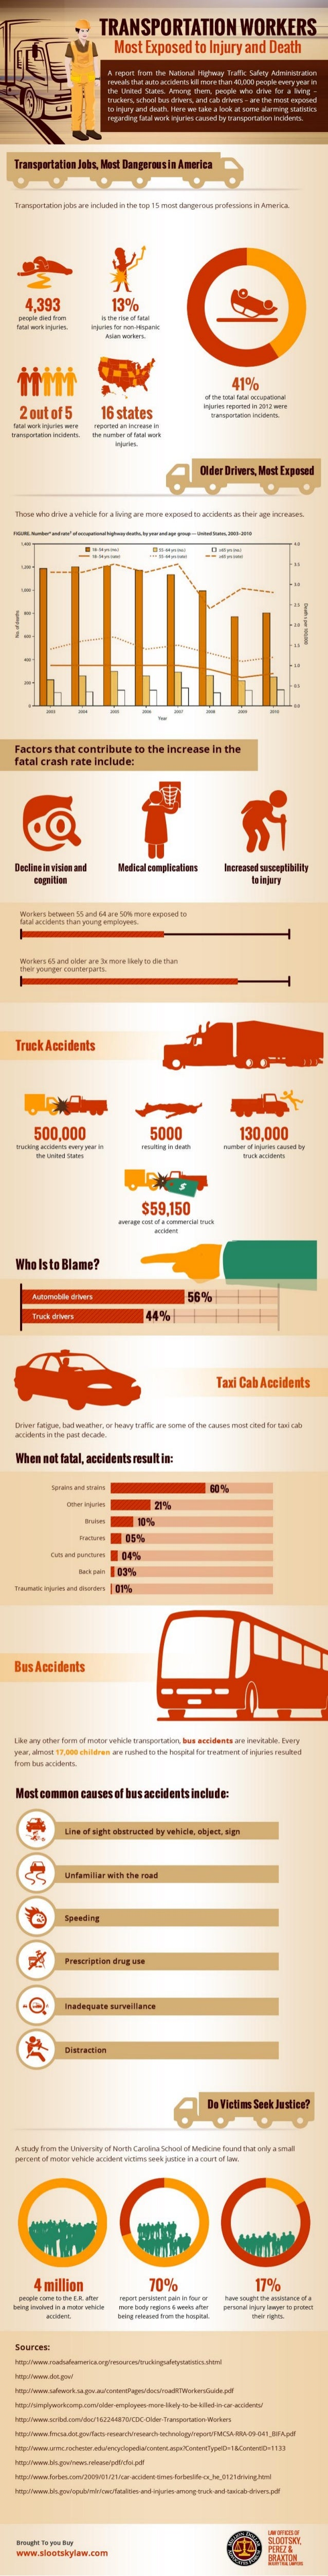 Transportation Workers: Most Exposed to Injury and Death